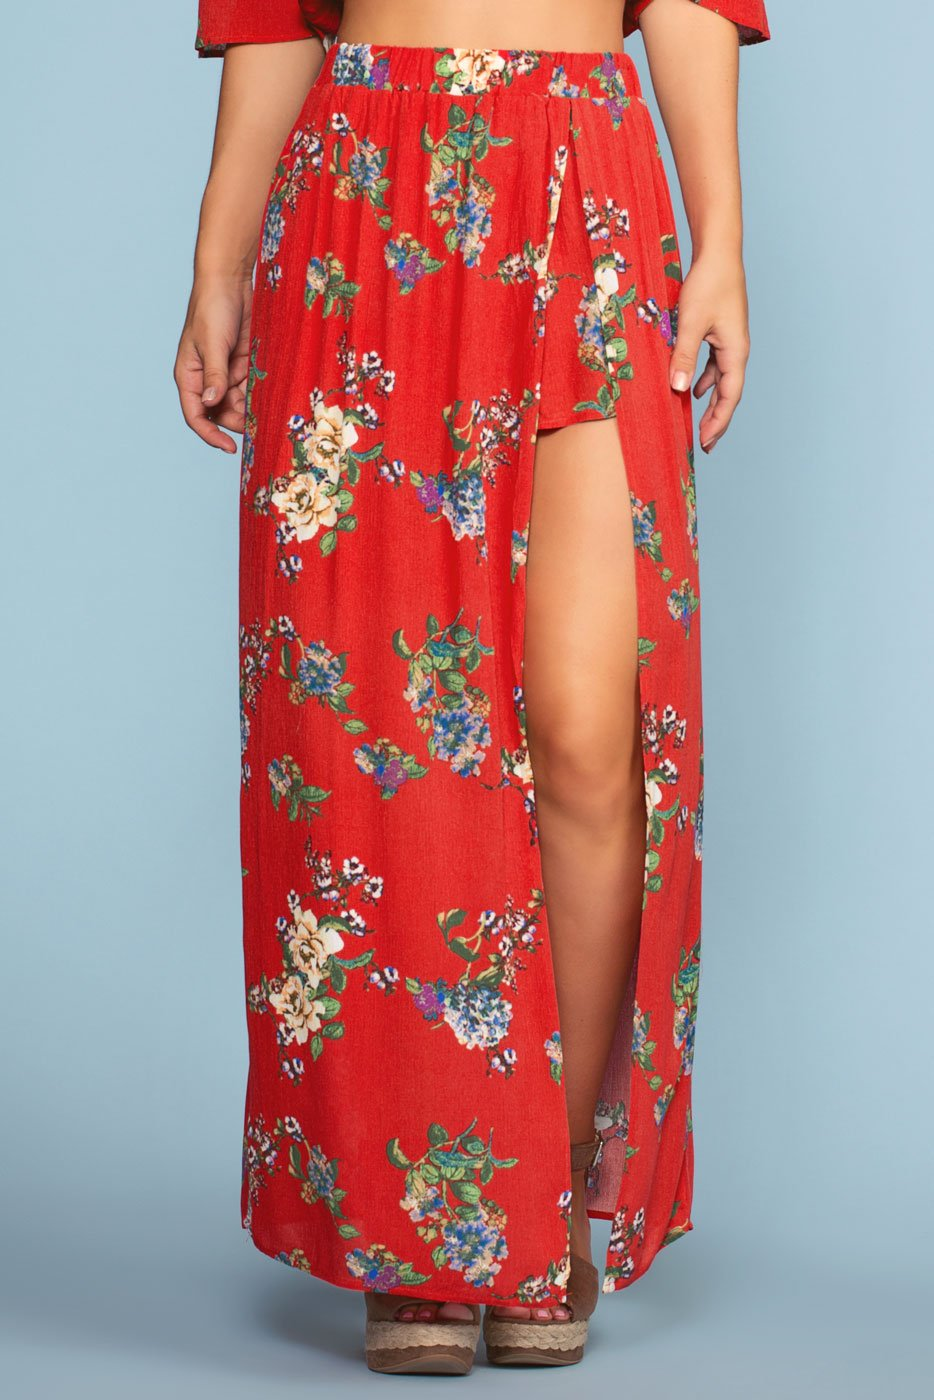 Skirts - Barefoot At Dusk Maxi Skirt - Red